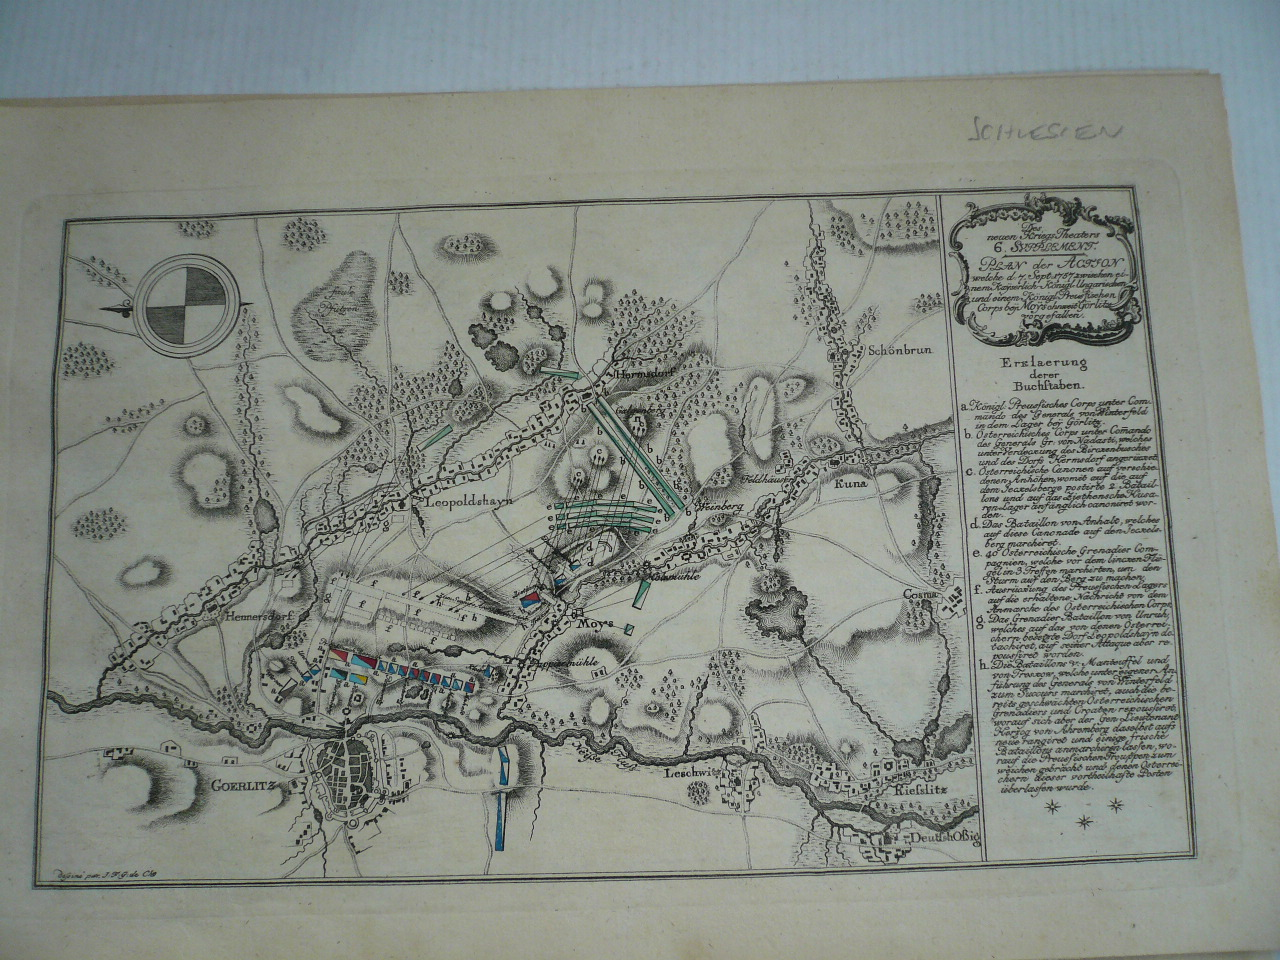 Battle of Moys, anno 1757, copperengraving, Friedrich Iacob